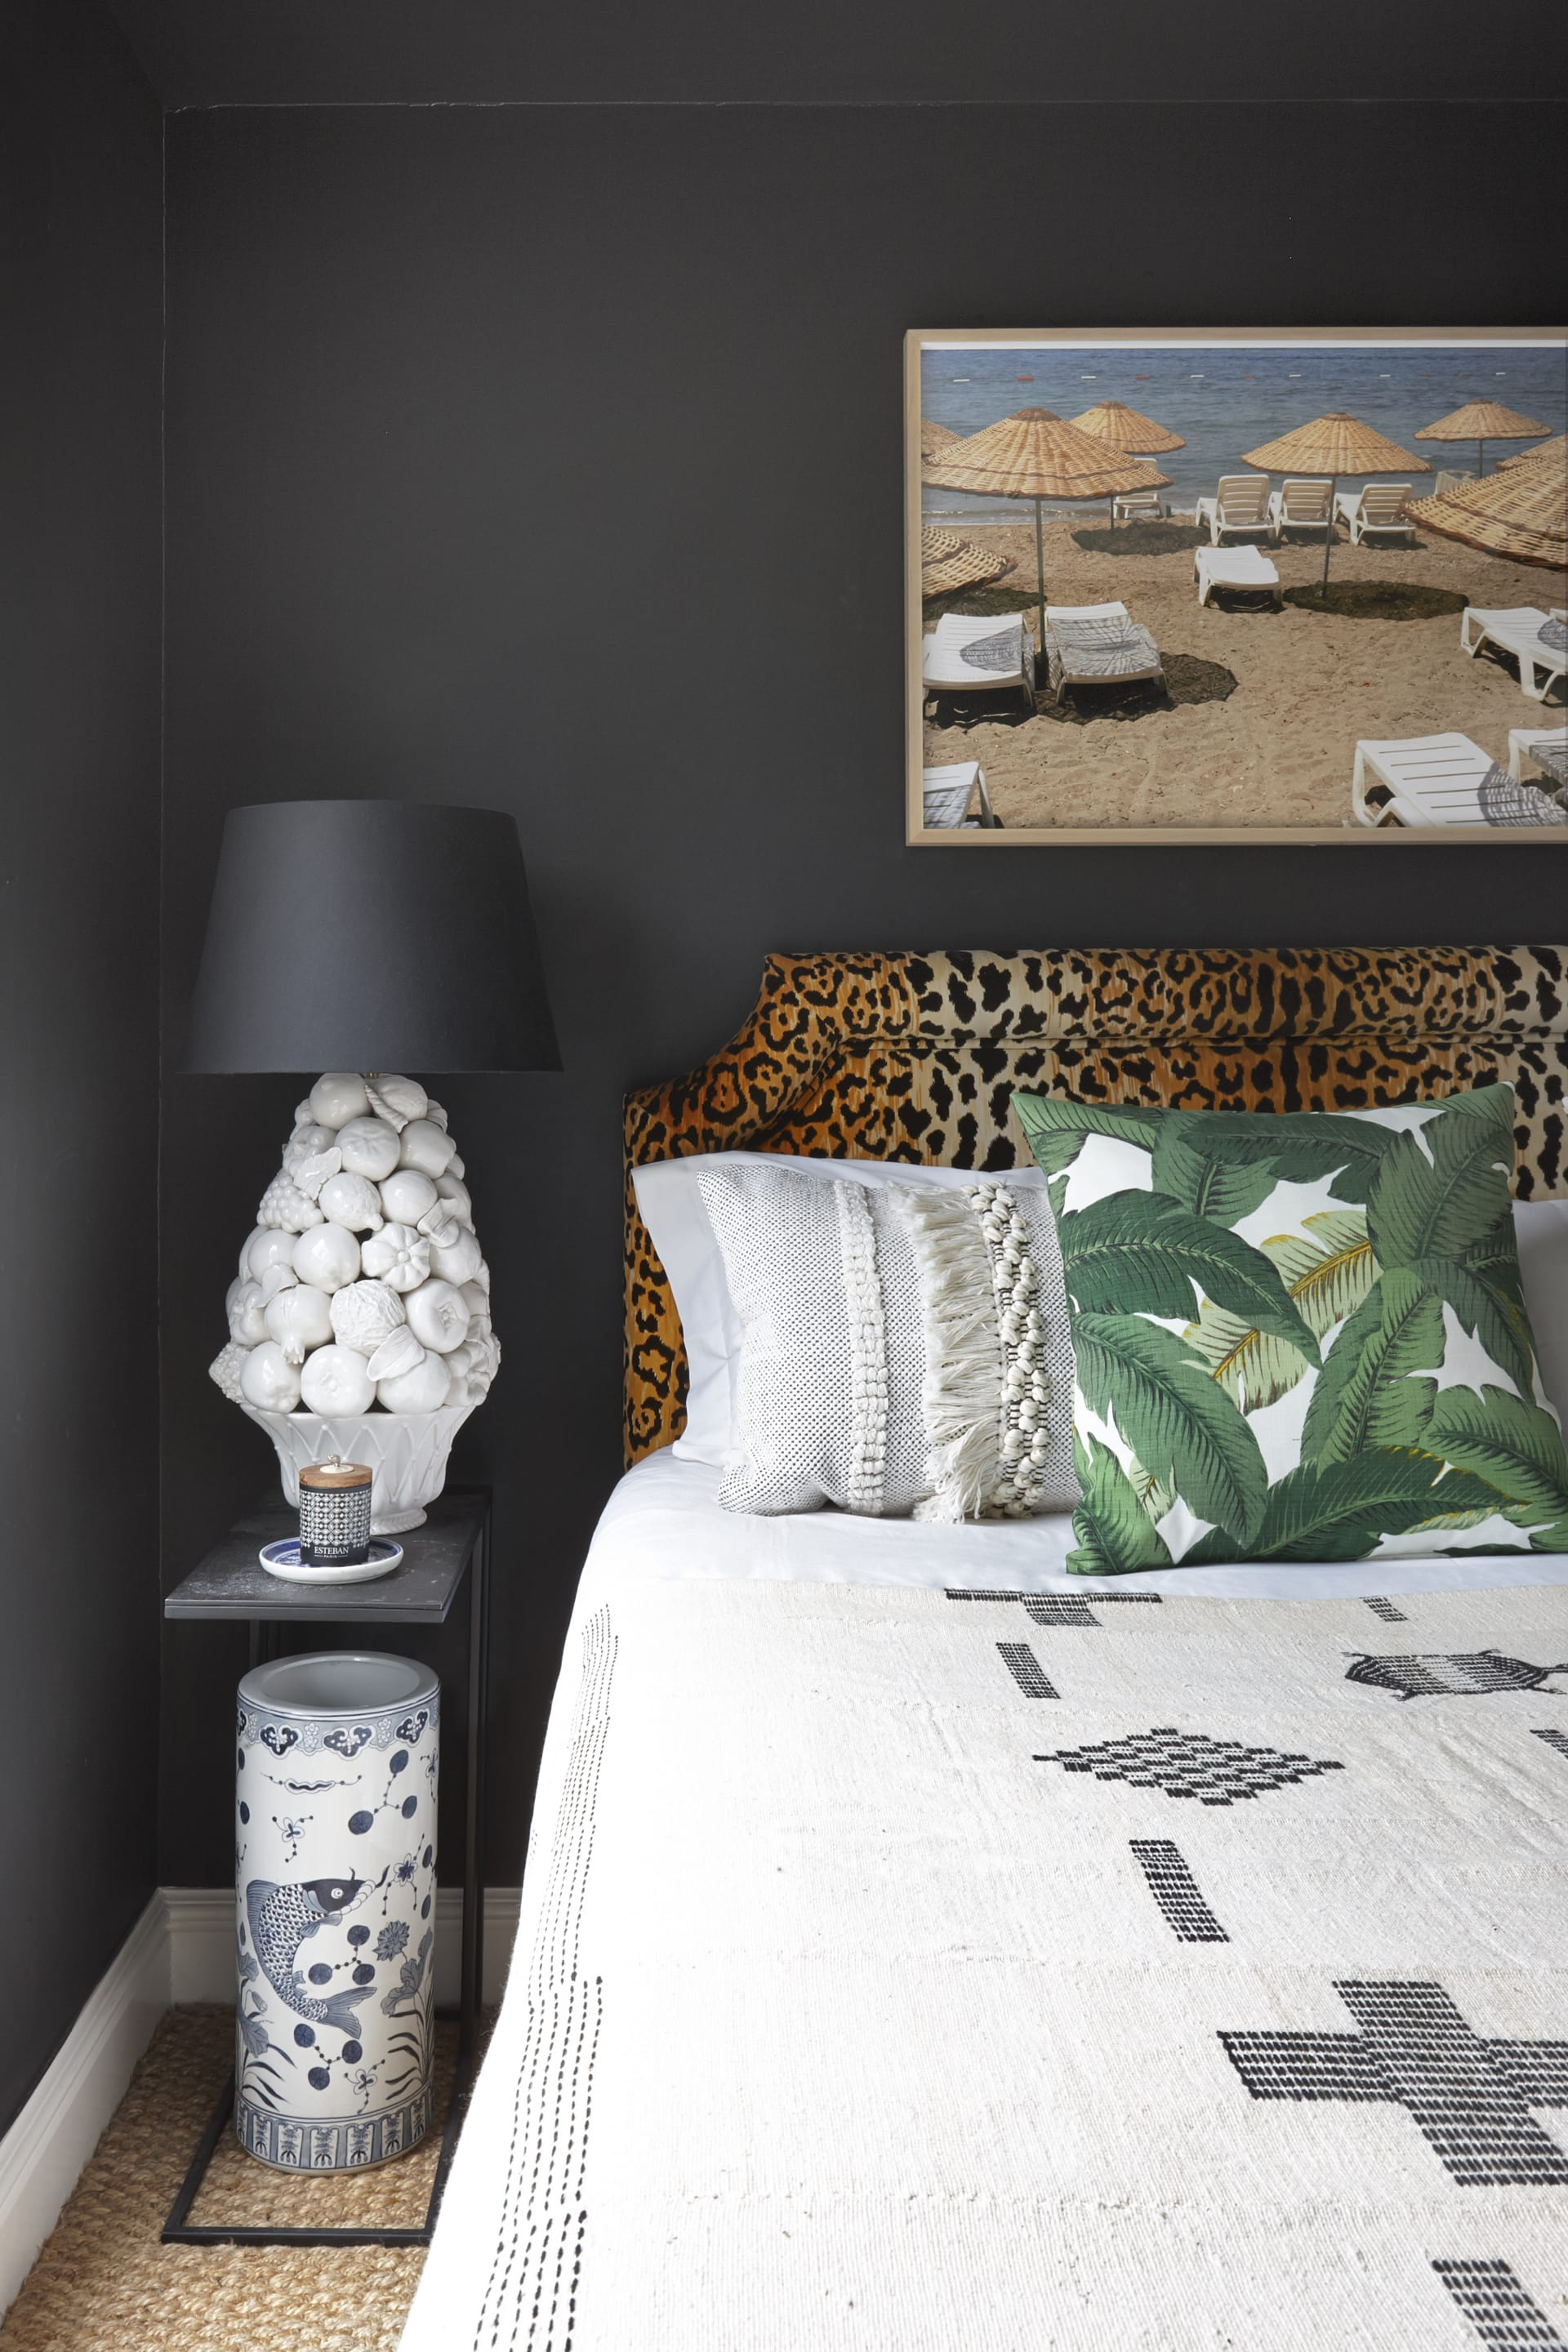 In the uniquely eclectic bedroom a framed photograph by Jen Jengo hangs on matt black wallsabove a leopard print headboard.© Micky Hoyle